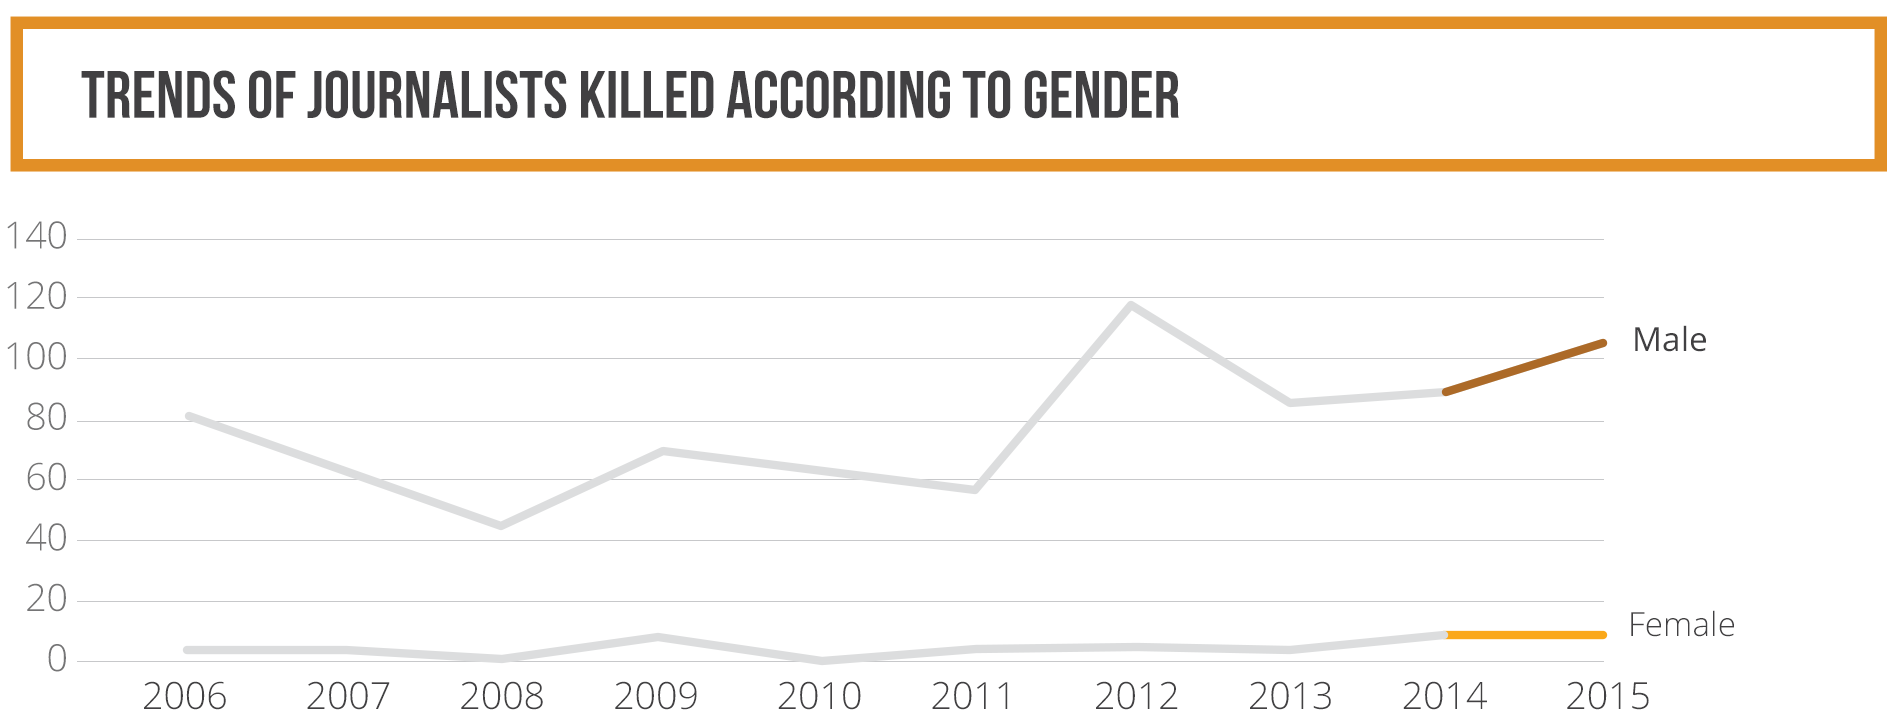 Trends of journalists killed according to gender